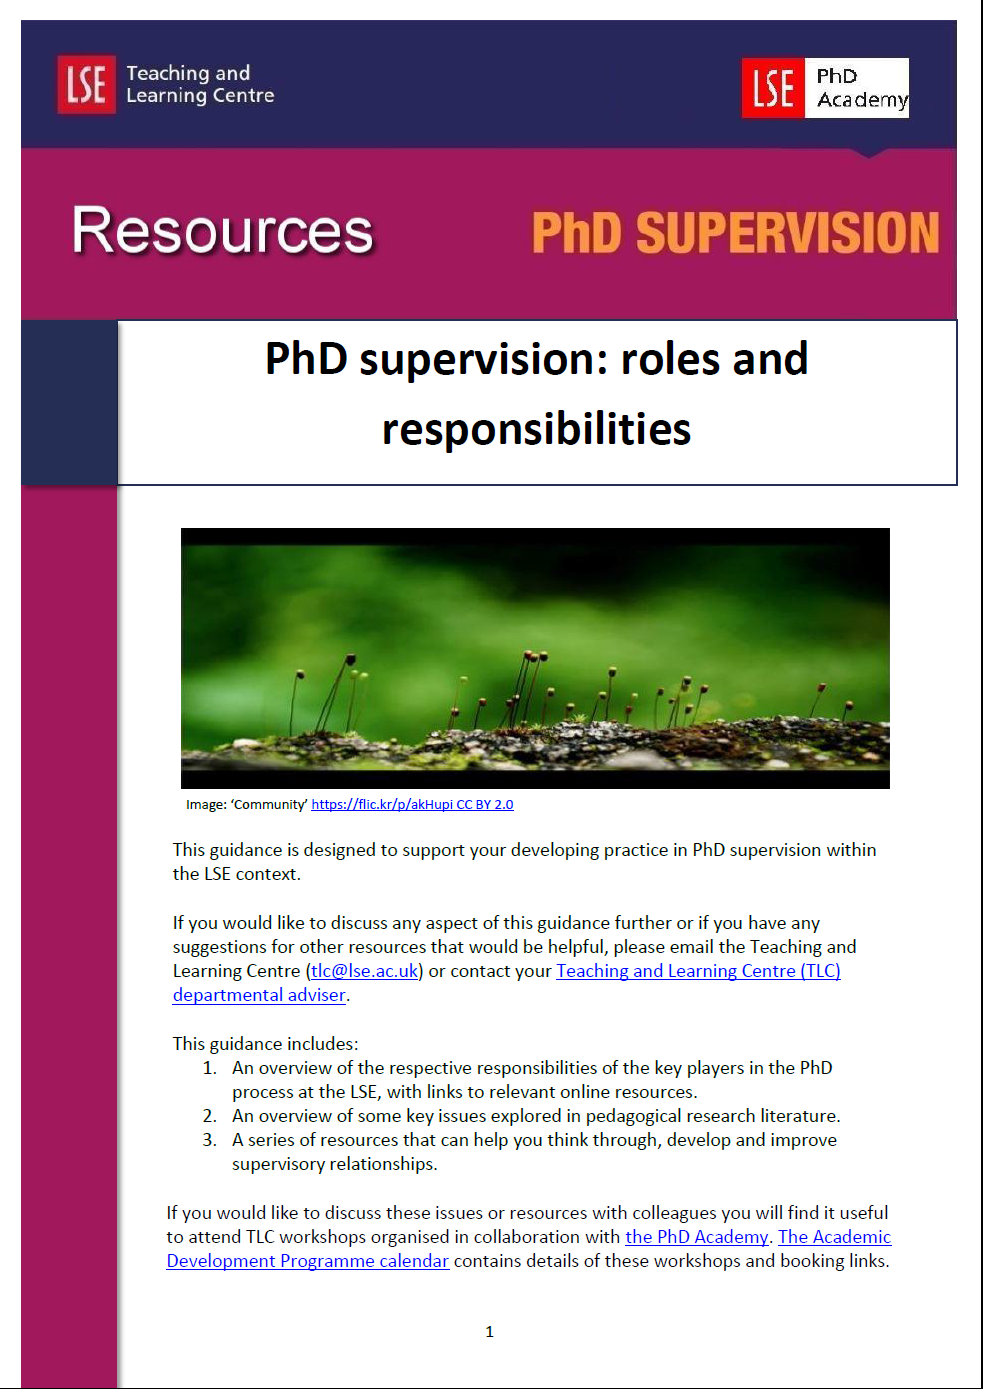 PhD Supervision Cover image